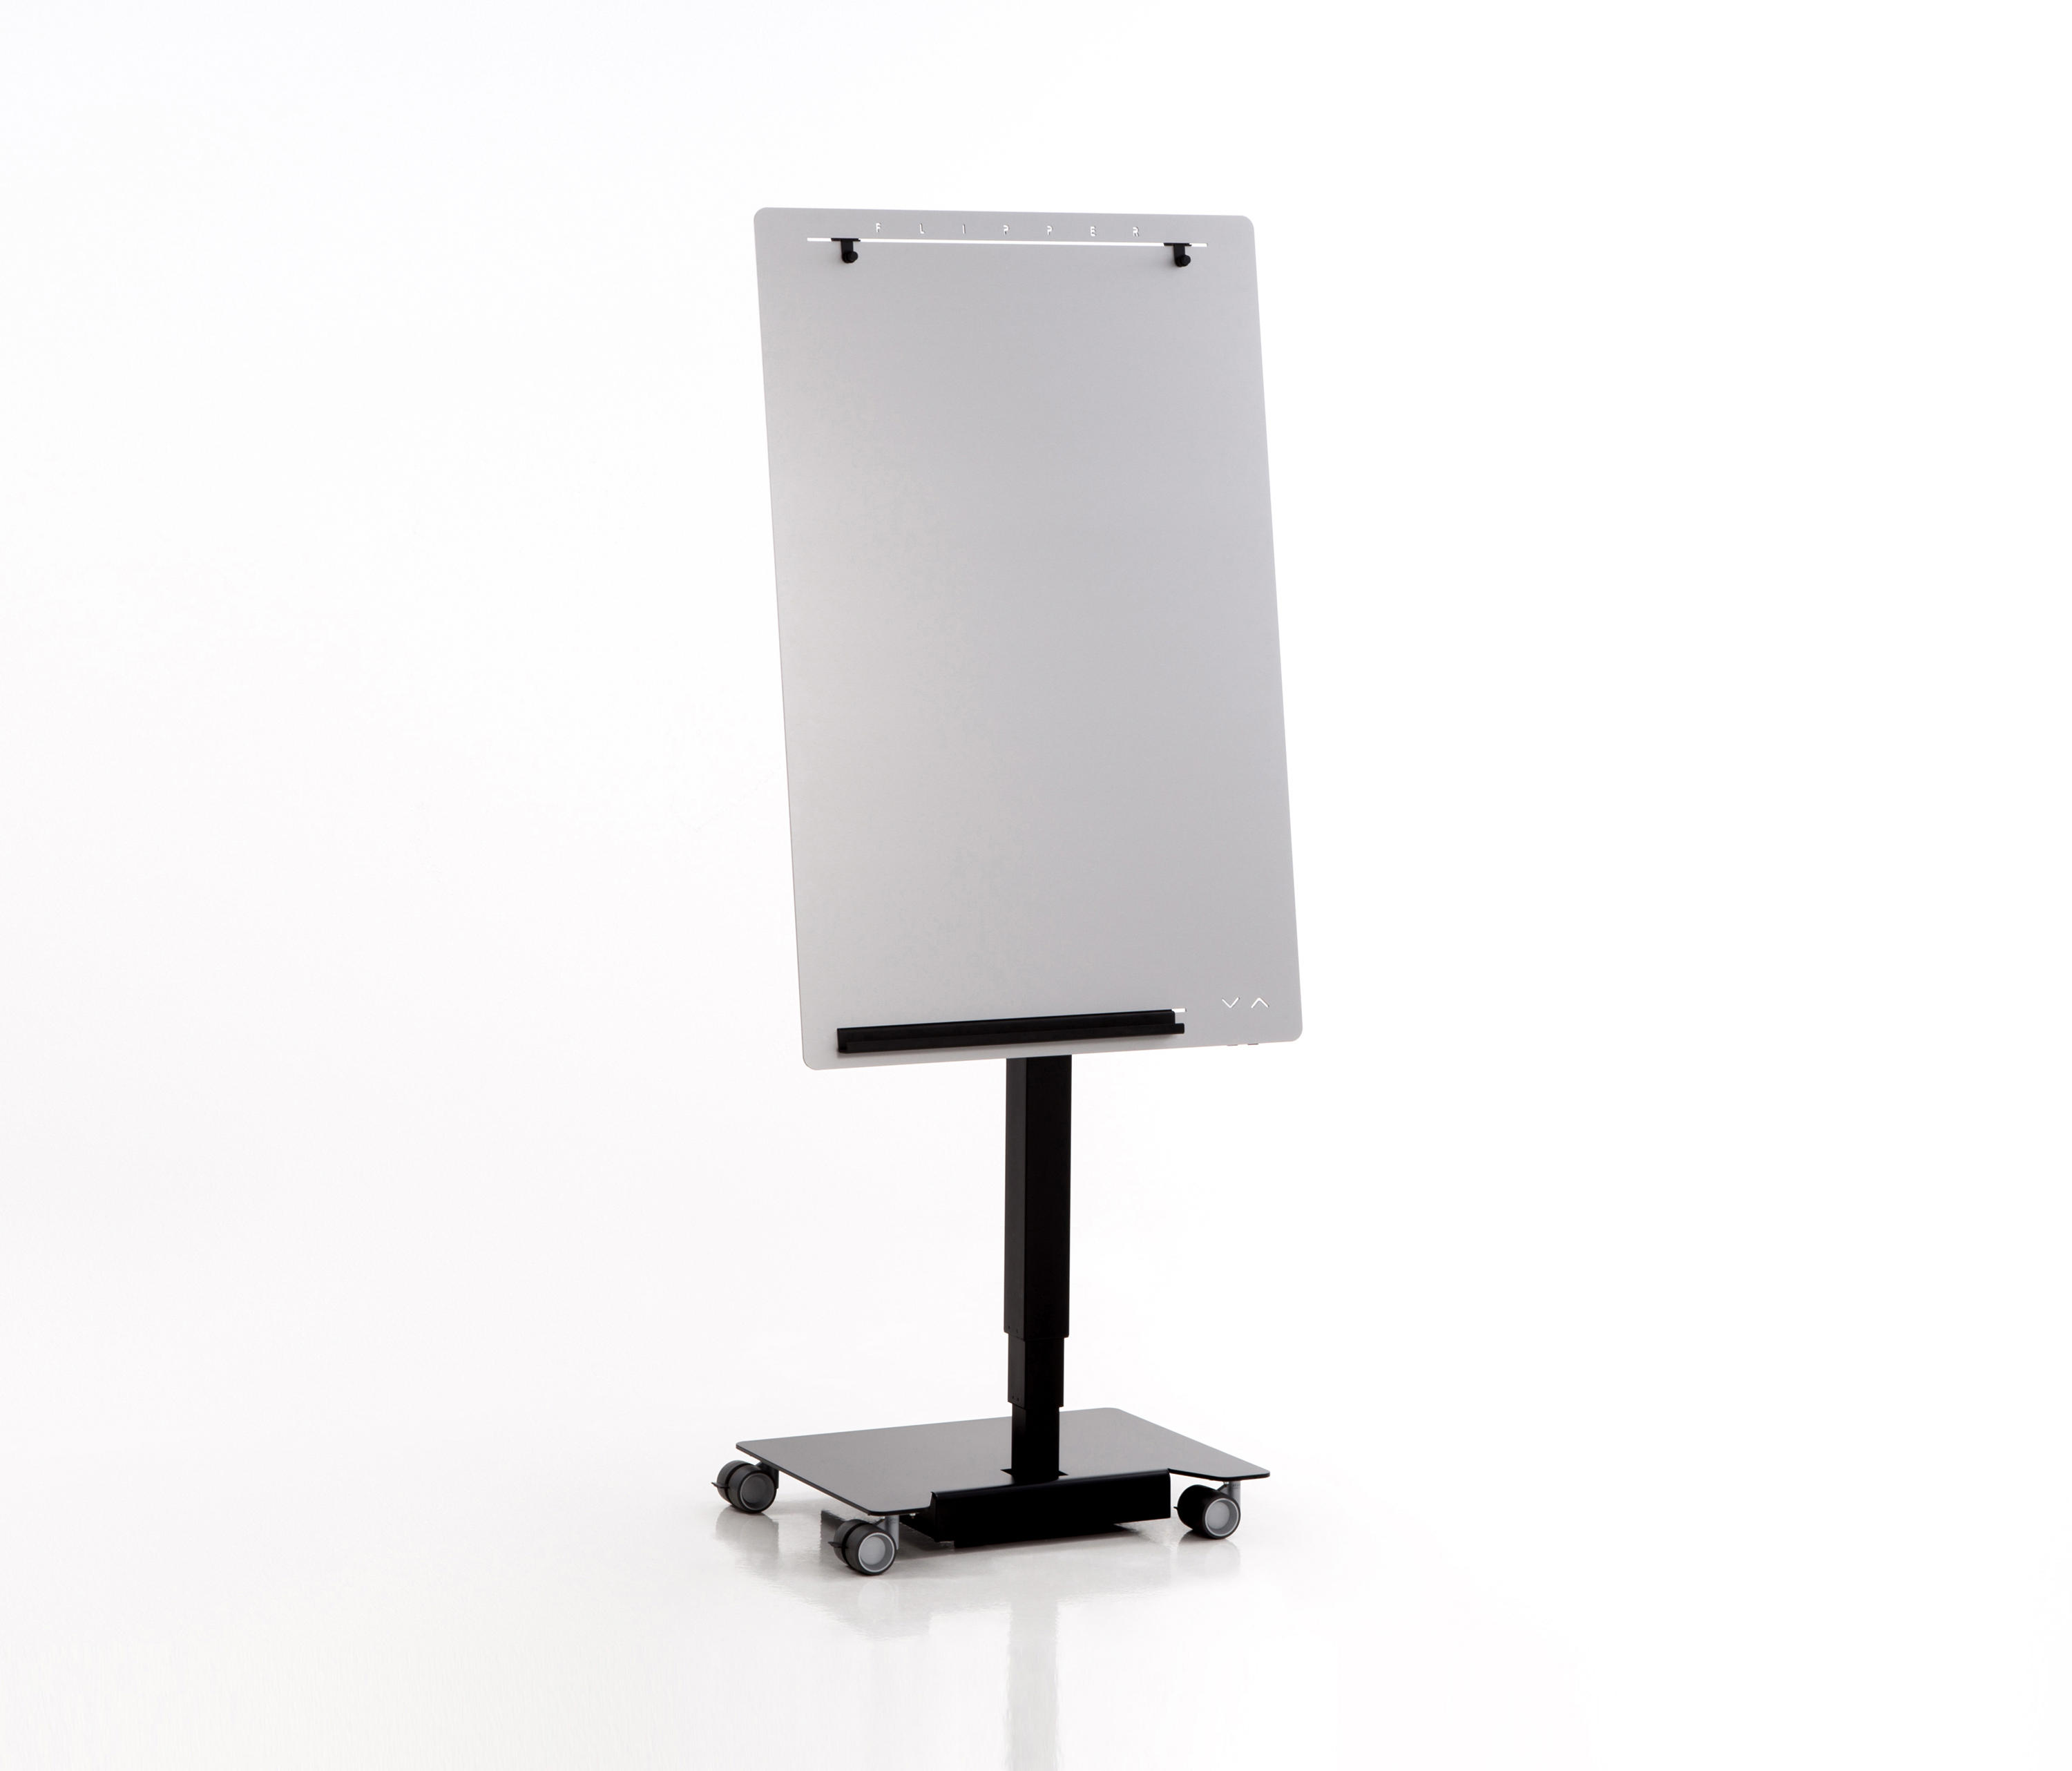 ELECTRICALLY HEIGHT-ADJUSTABLE, MOBILE FLIPCHART FLIPPER ...